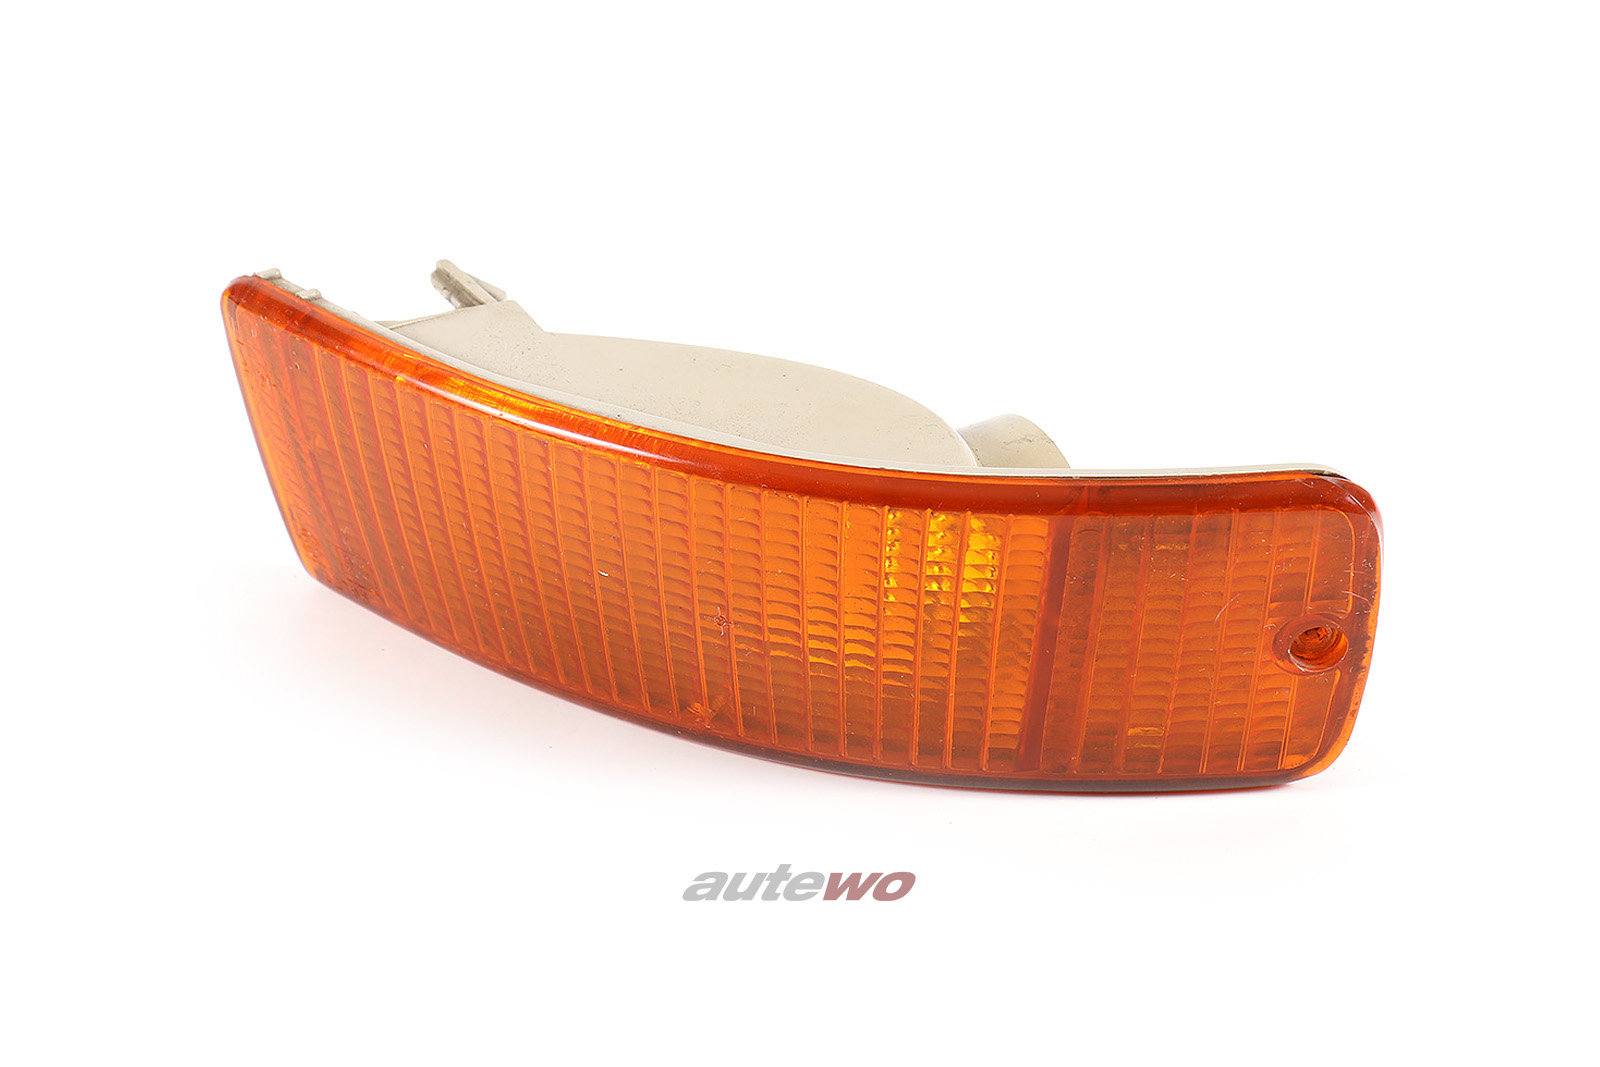 895953049A Audi 90/Coupe Typ 89 Blinker Vorne Links orange